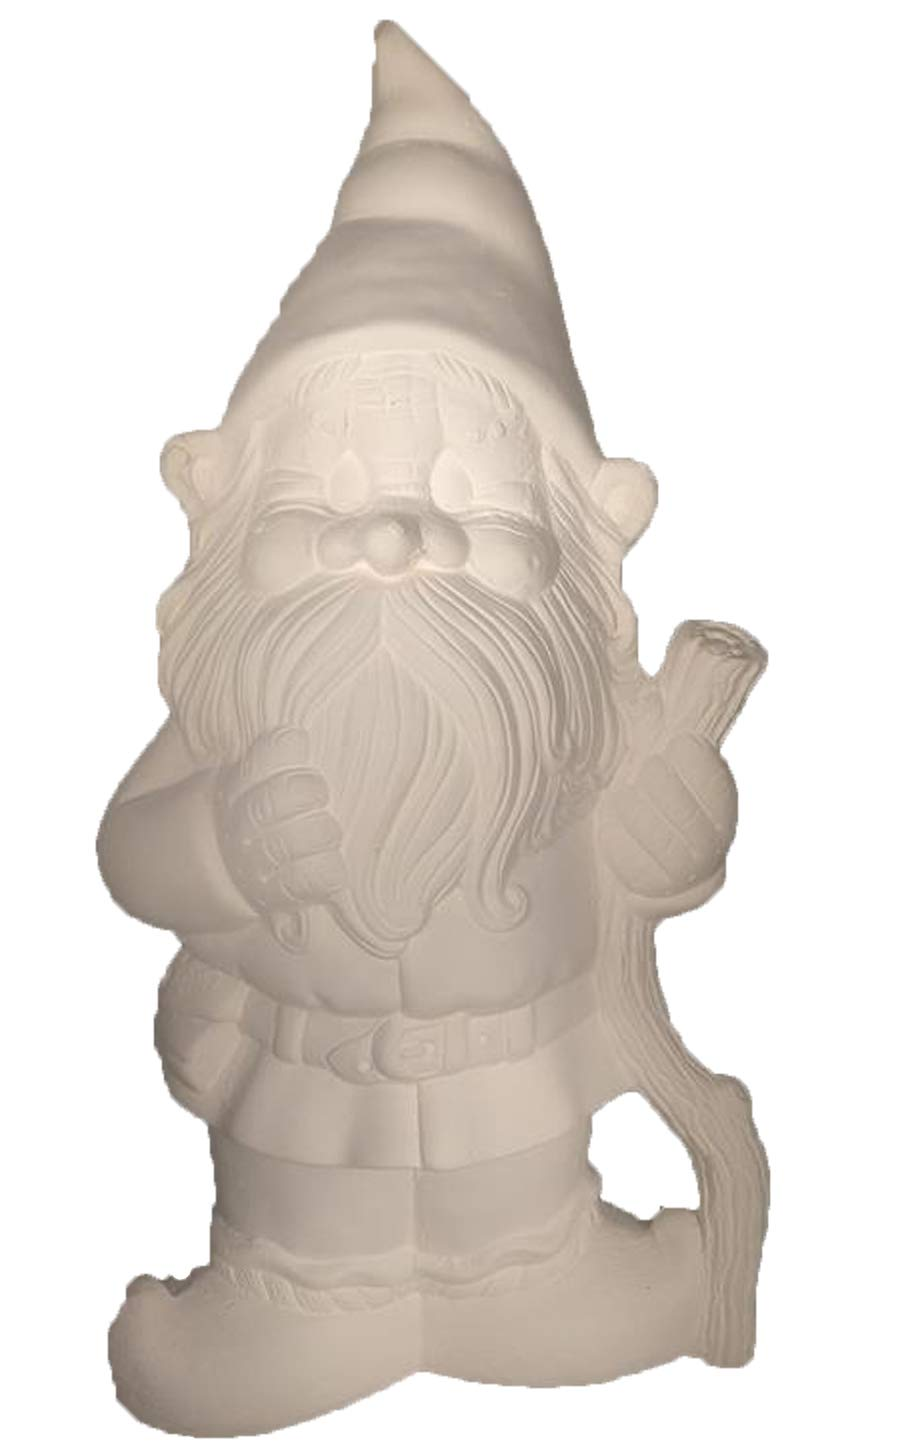 Papa Bertie Gnome 16'' x 8'' Ceramic Bisque, Ready to Paint by Creative Kreations Ceramics (Image #1)